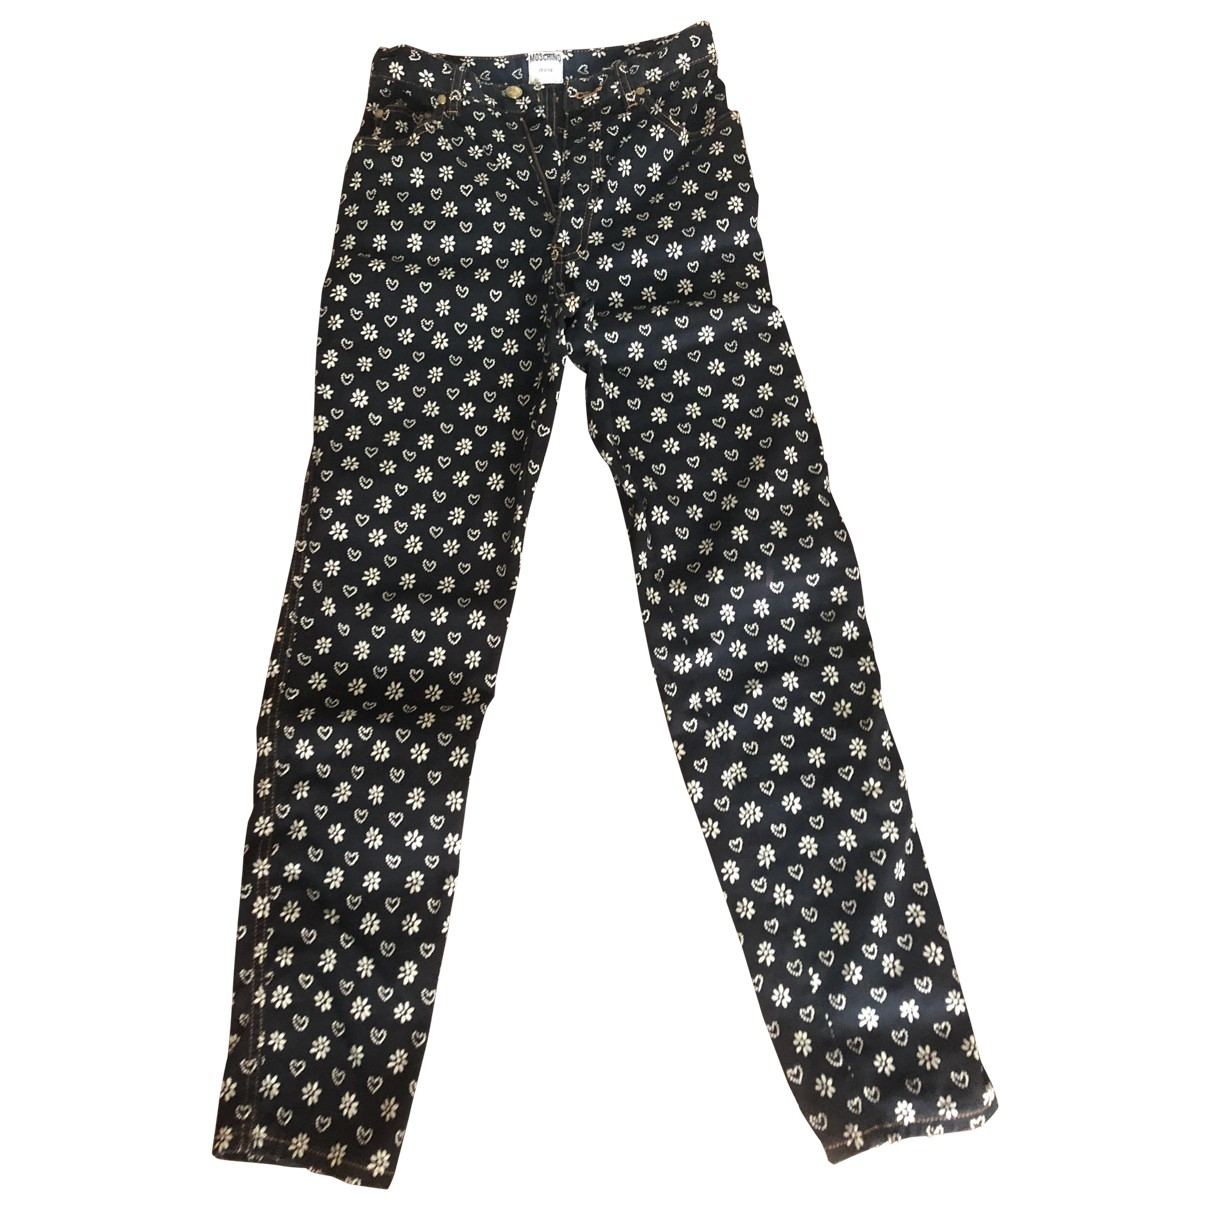 Moschino Cheap And Chic \N Black Cotton Trousers for Women 38 IT